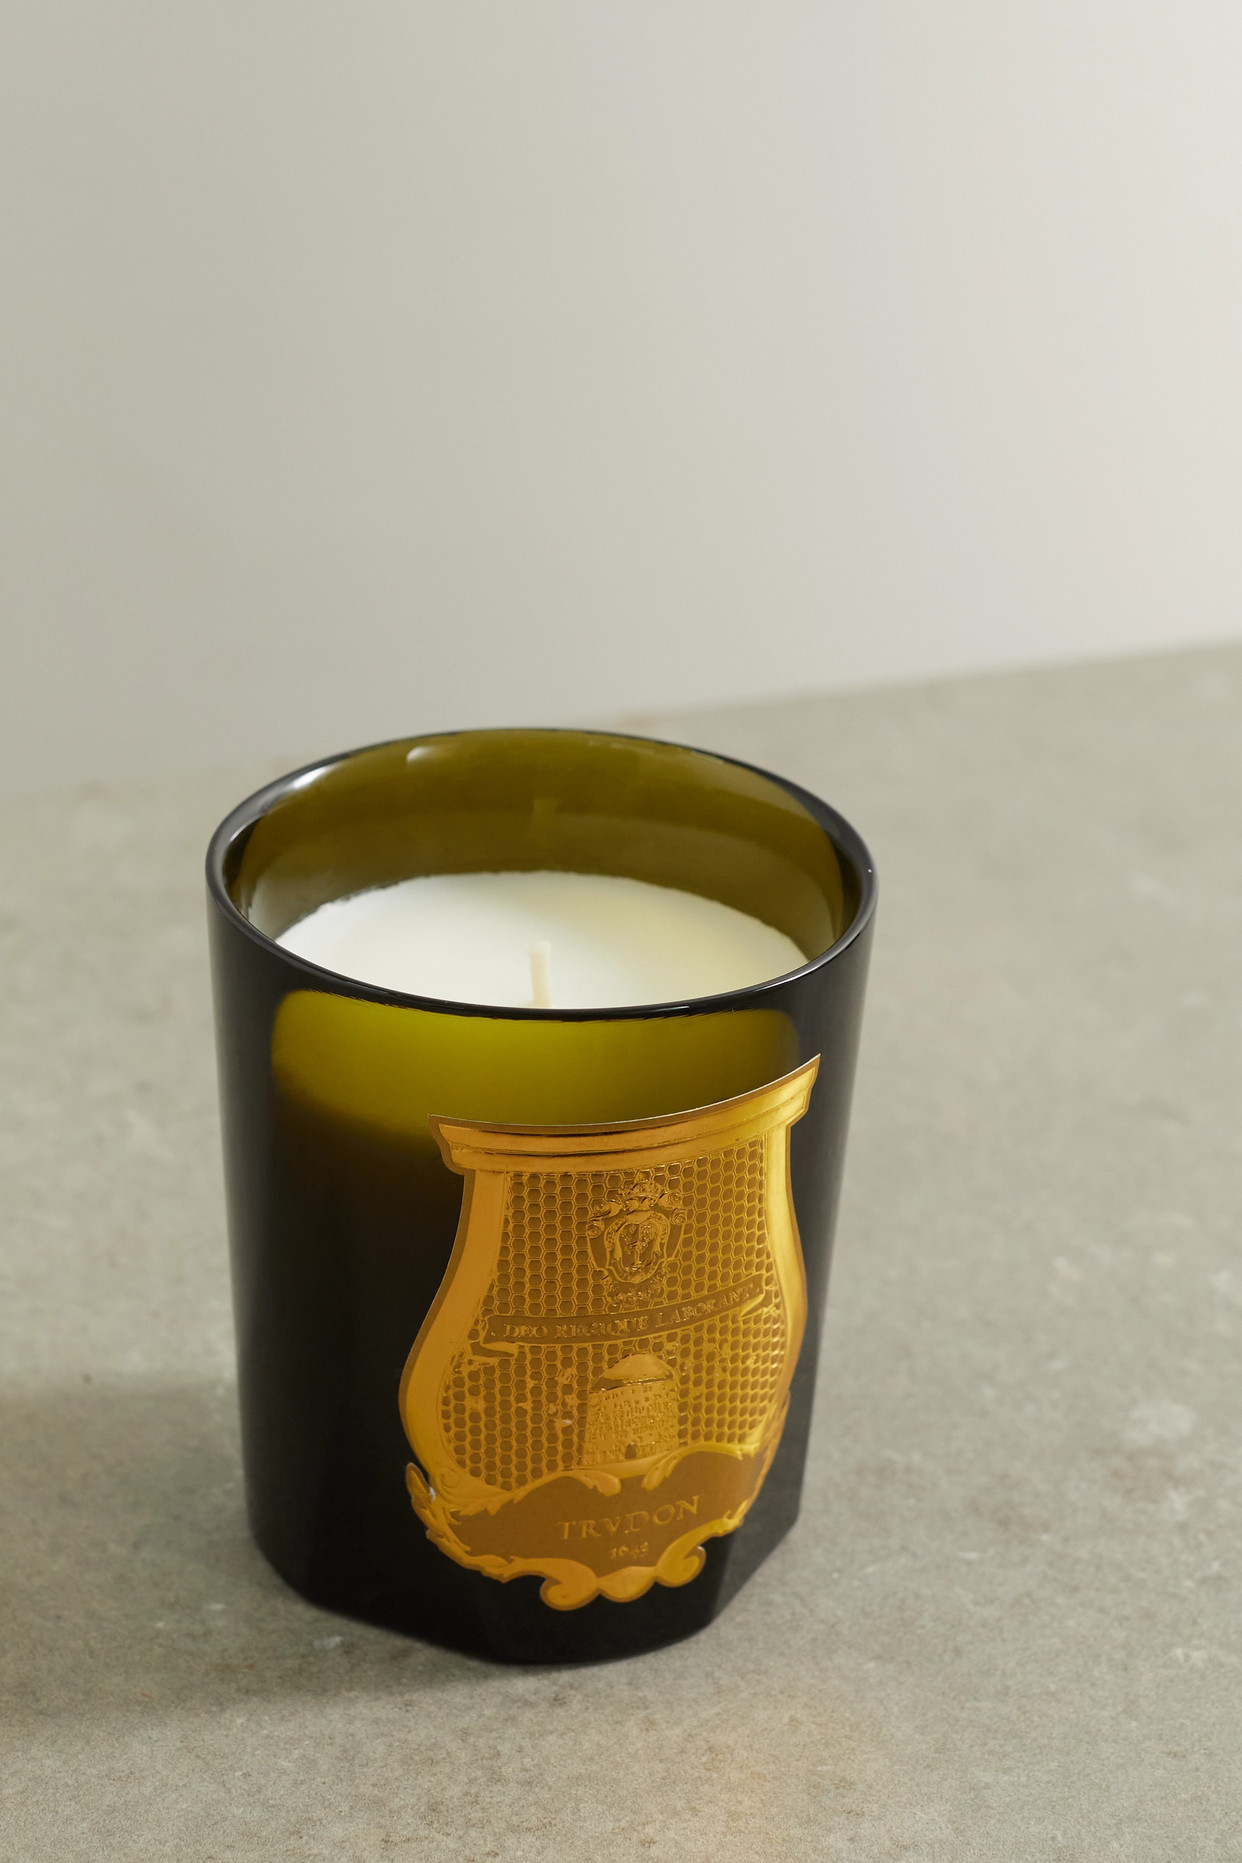 CIRE TRUDON - Abd El Kader Scented Candle, 270g - one size